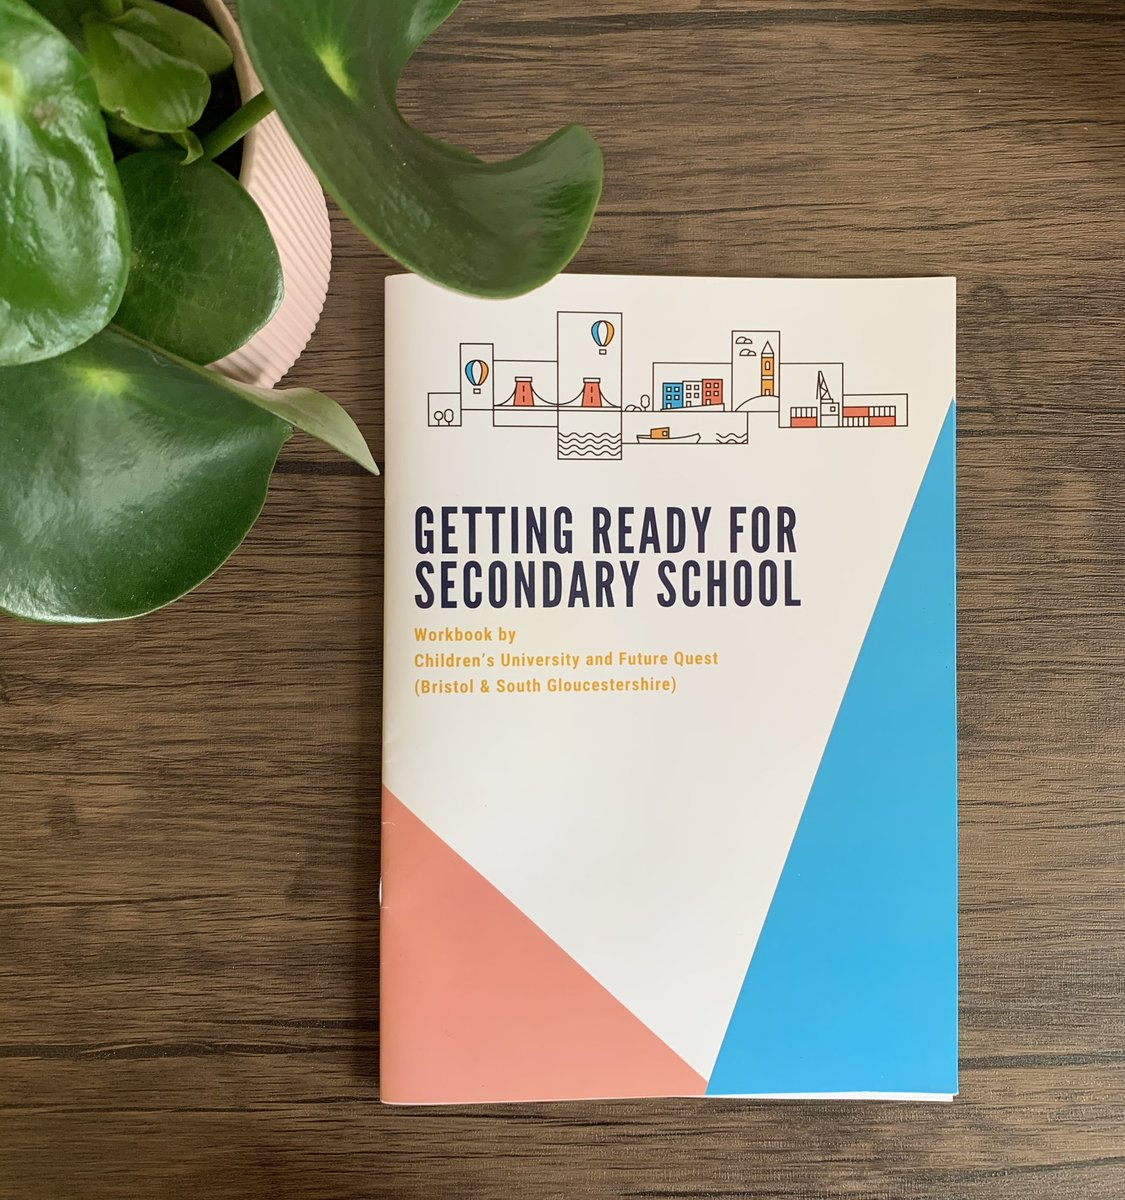 Copies of our 'Getting Ready for Secondary School' workbook have arrived! This booklet was created in collaboration with Bristol and South Glos Children's University and is available free to schools. Want printed copies? Let us know here or via Future.Quest@uwe.ac.uk https://t.co/DoQRxv76ps